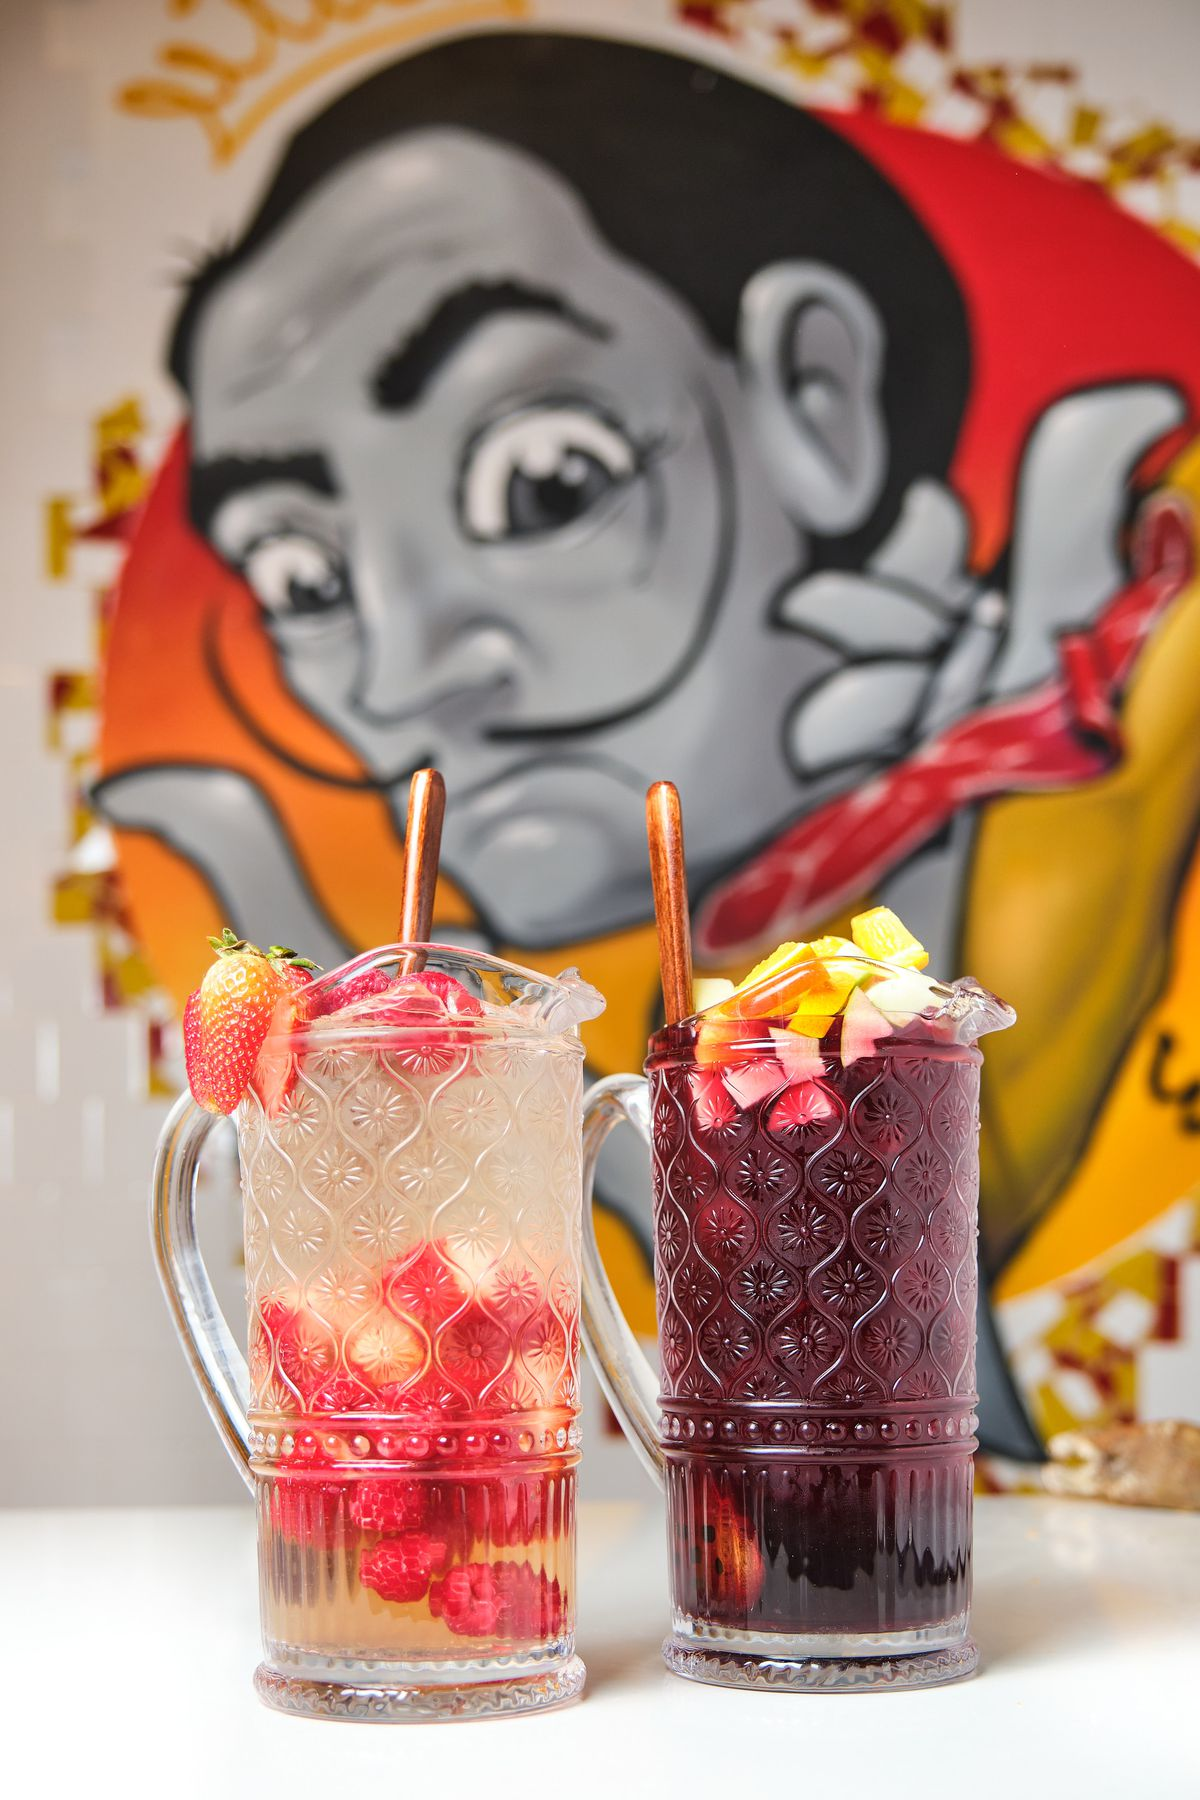 A mural of Salvador Dalí with two cocktails in front of it